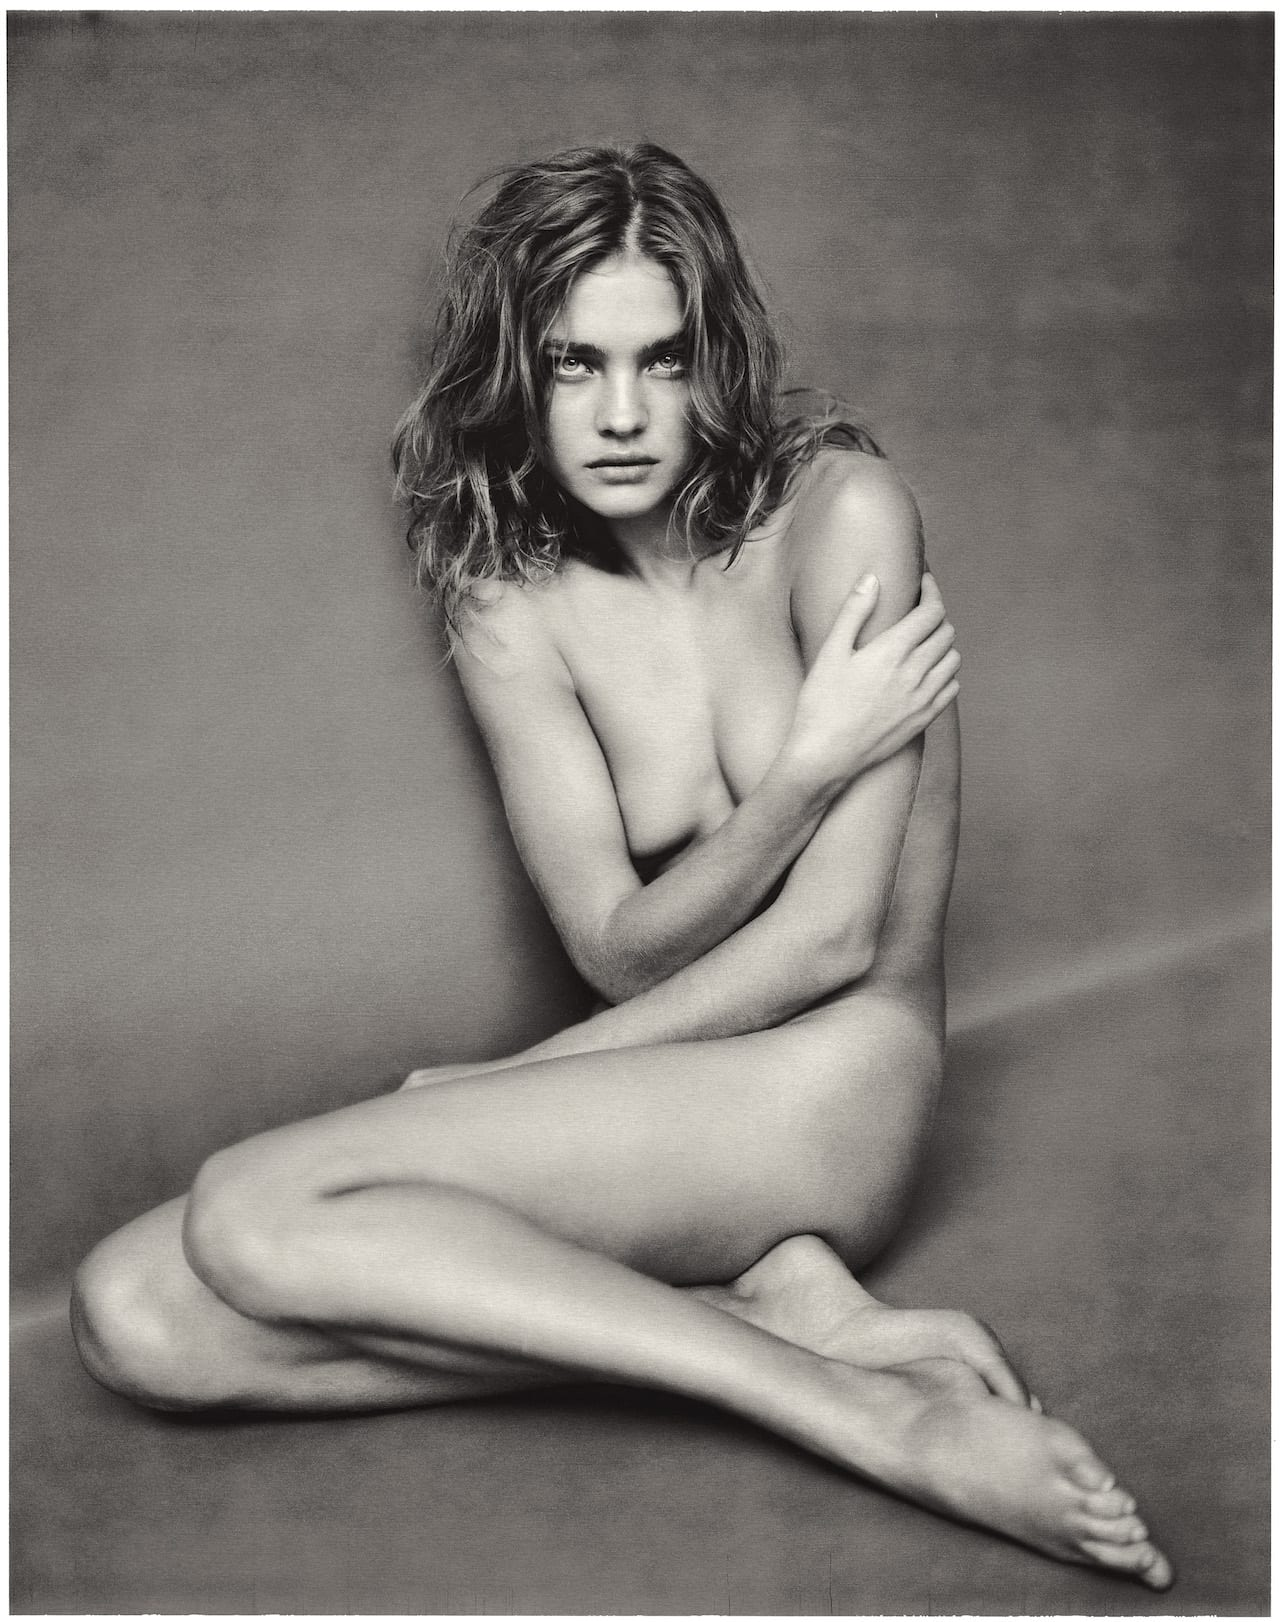 The Feeling For Light Paolo Roversi On Photography